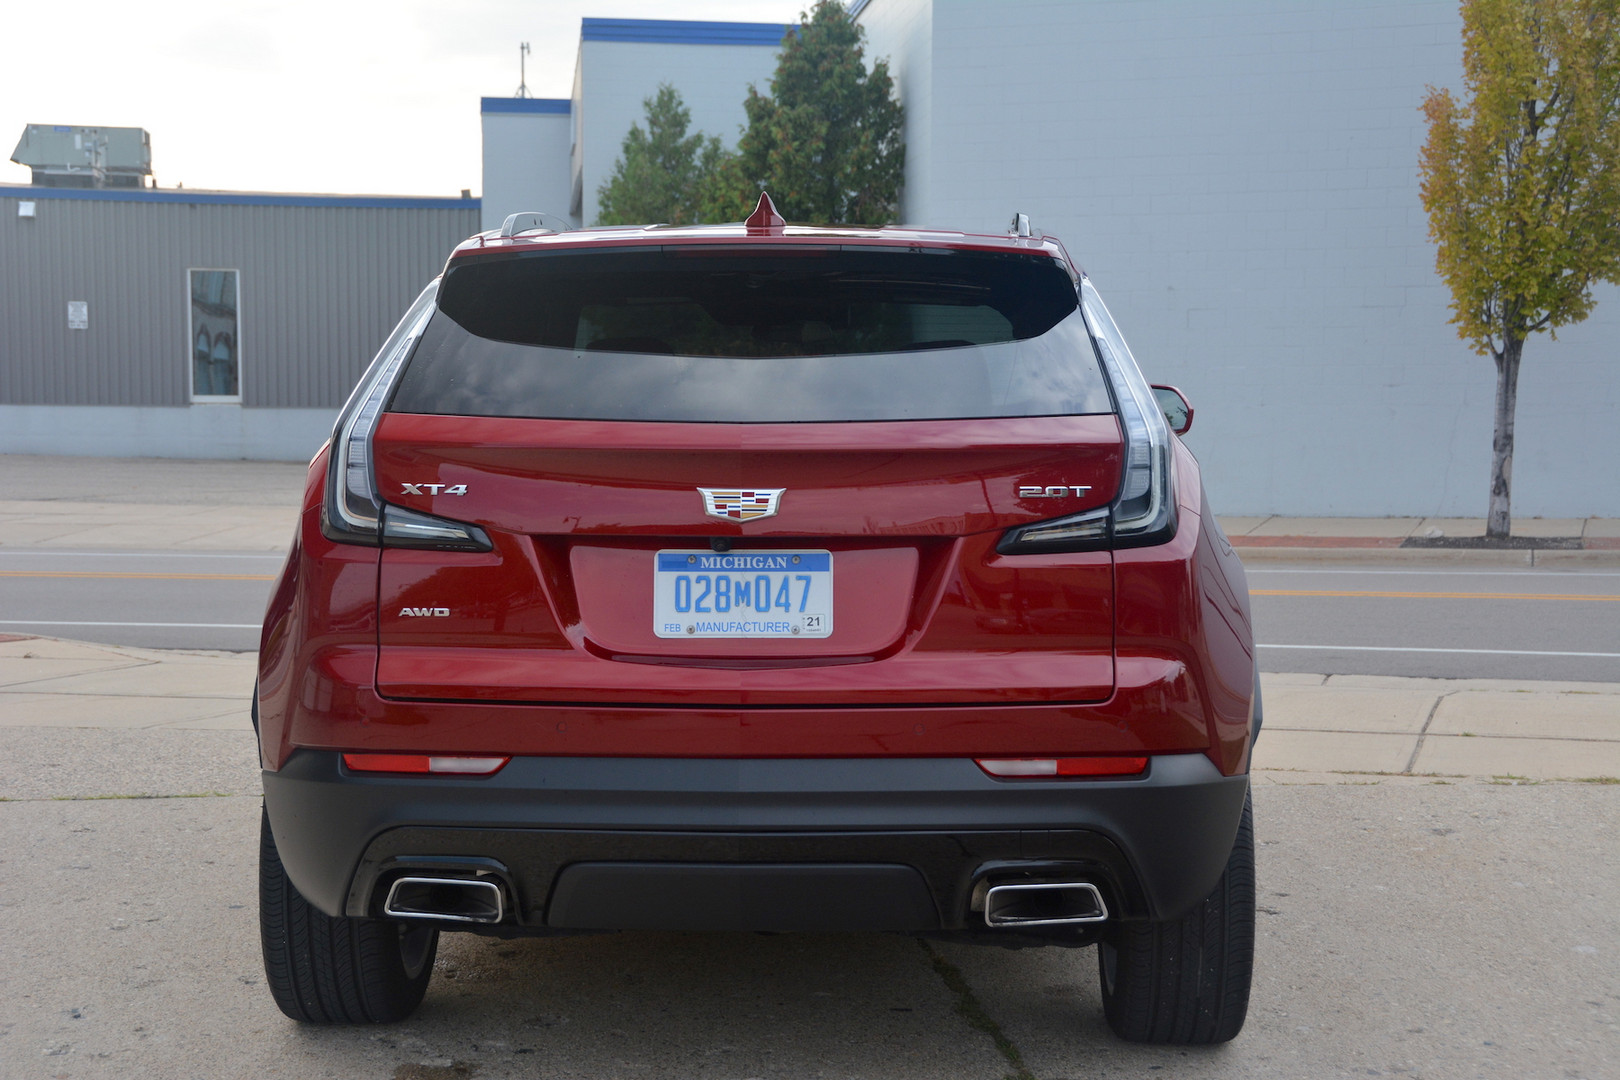 2019 Cadillac XT4 Rear Lights